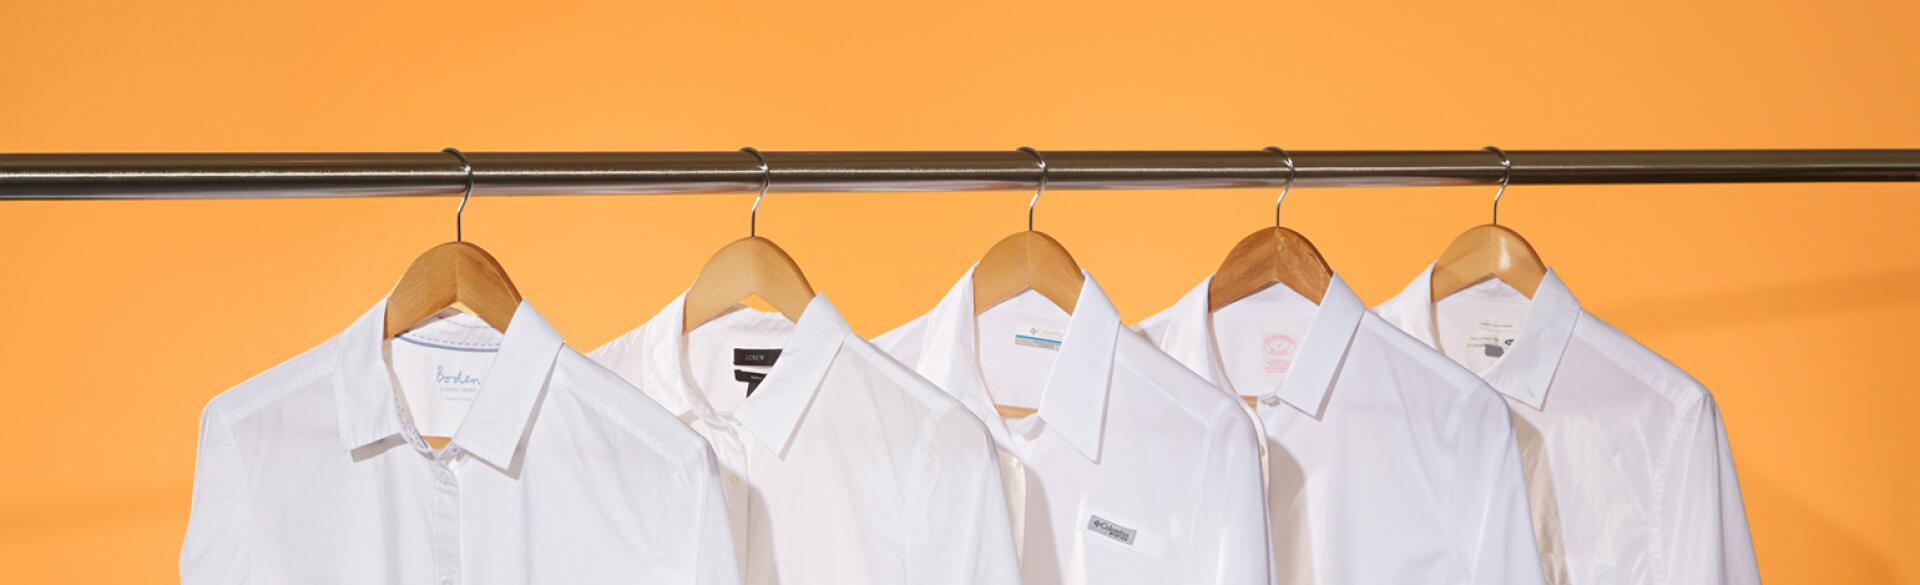 image of five white shirts on hangers